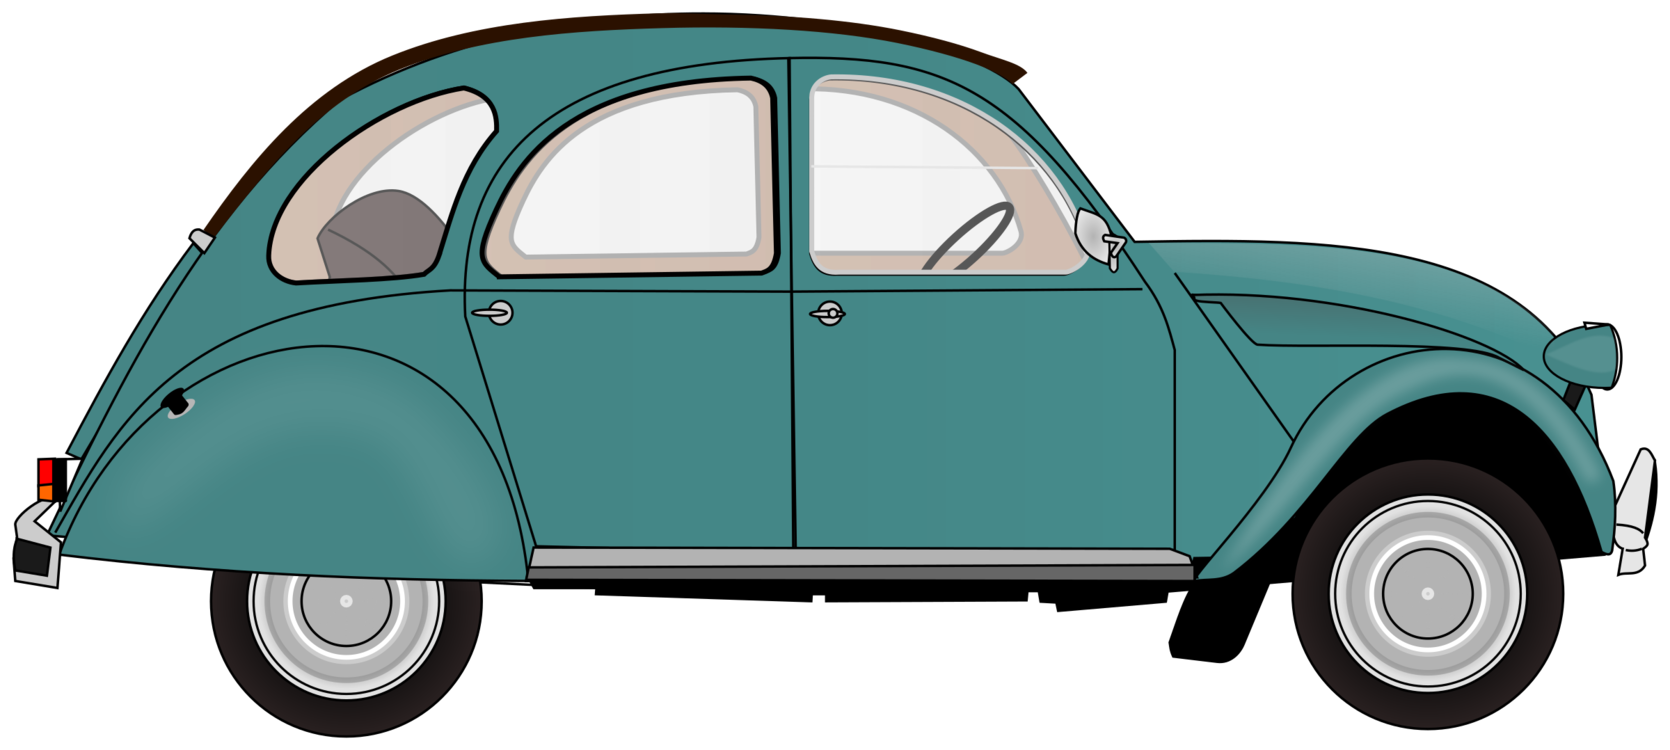 Mercedes drawing antique car. Classic volkswagen beetle free